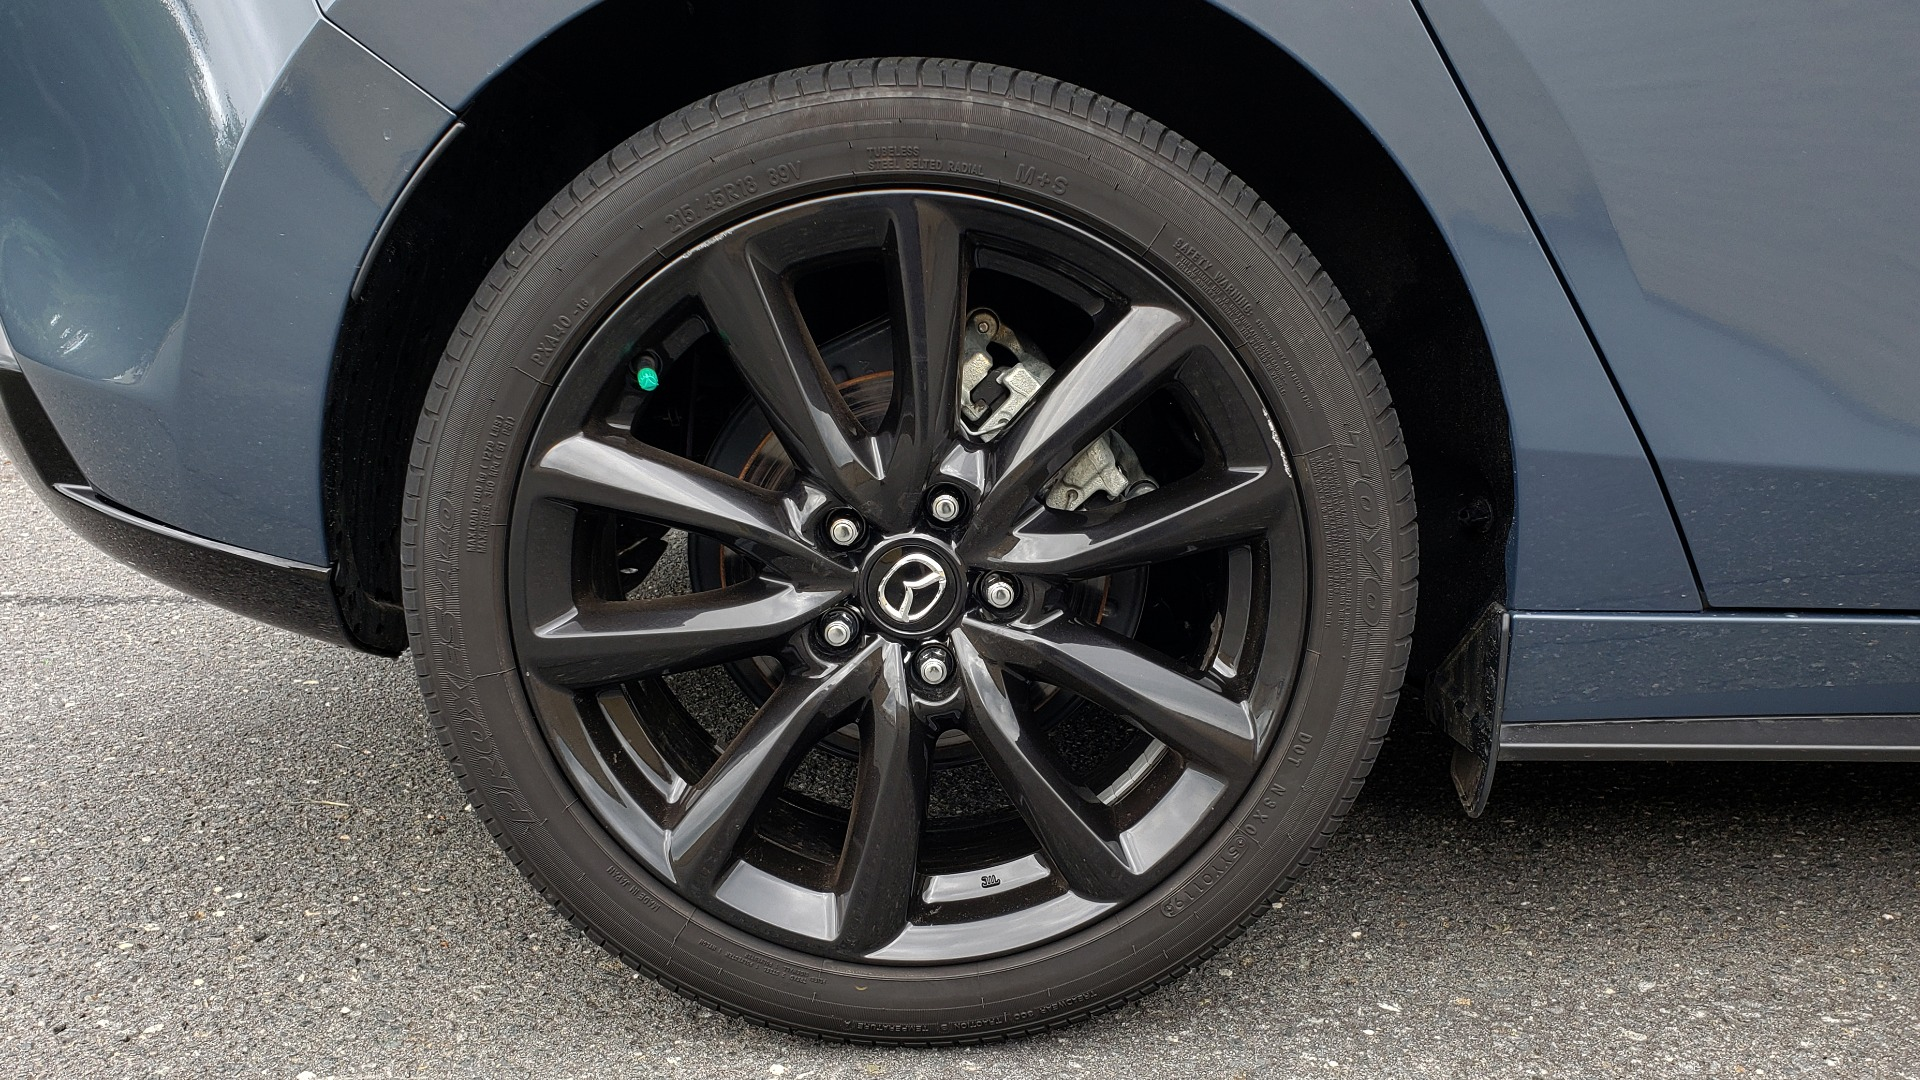 Used 2019 Mazda MAZDA3 HATCHBACK PREMIUM PKG / AUTO / 18IN BLACK ALLOY WHEELS / BOSE / LEATHER for sale Sold at Formula Imports in Charlotte NC 28227 72